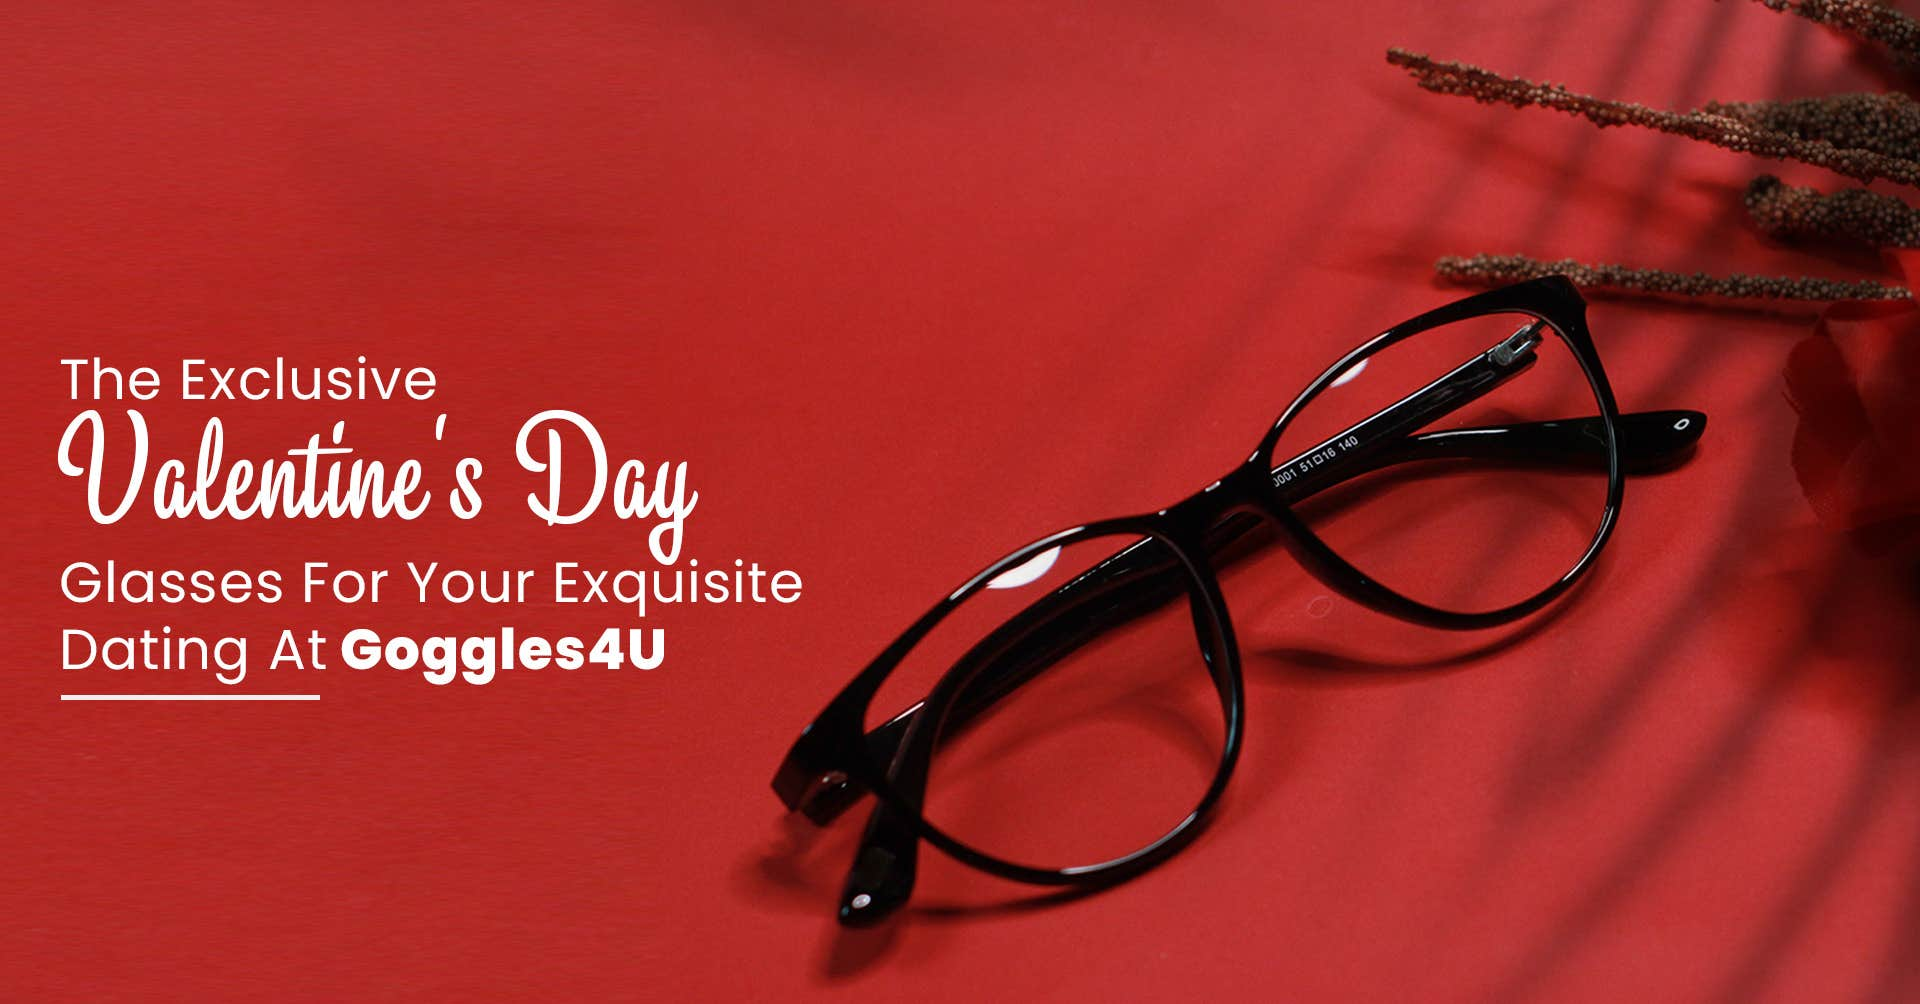 The Exclusive Valentine's Day Glasses For Your Exquisite Dating At Goggles4U